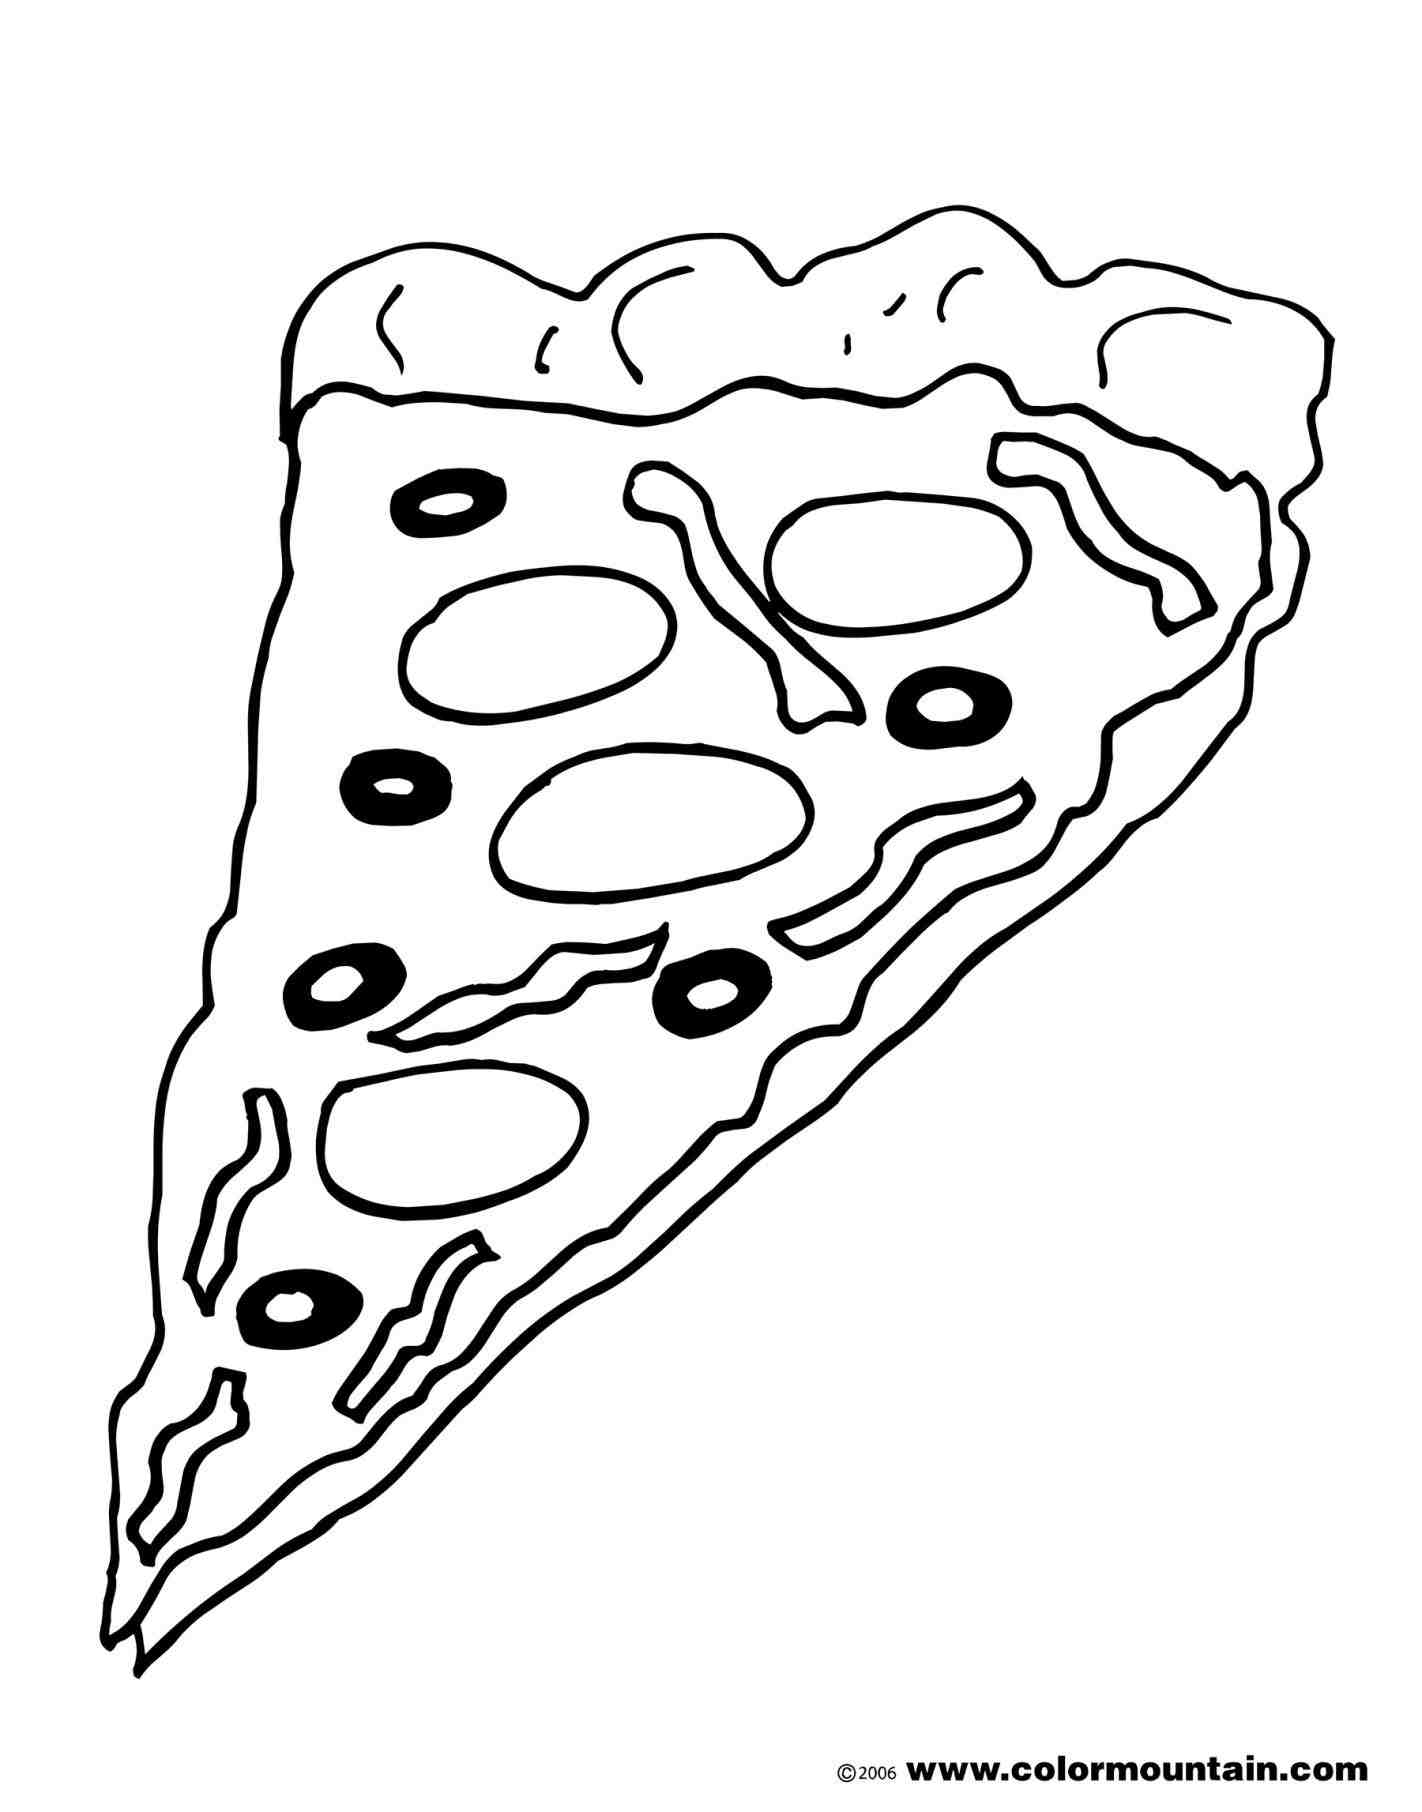 1422x1812 Pizza Slice. Pizza Slice Drawing Vector Art. Pizza Slice Vector